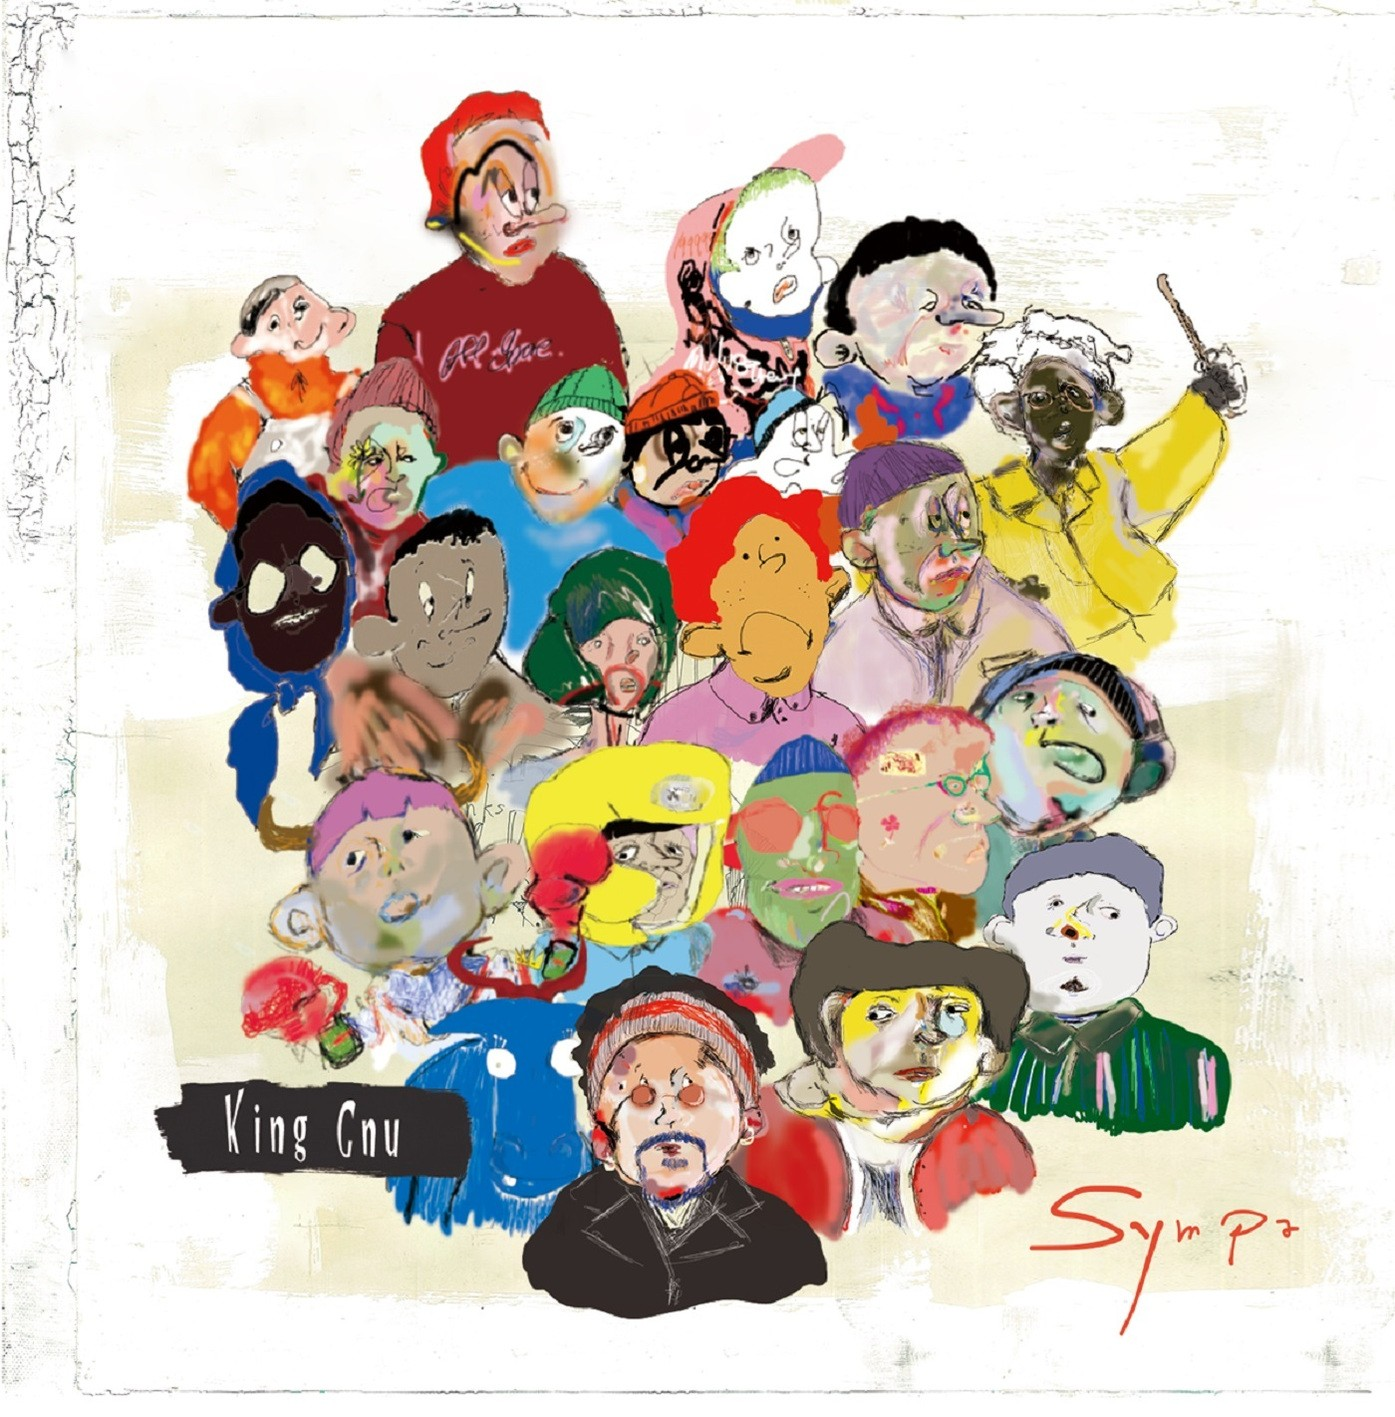 King Gnu – Sympa [24bit Lossless + MP3 VBR / WEB] [2019.01.16]